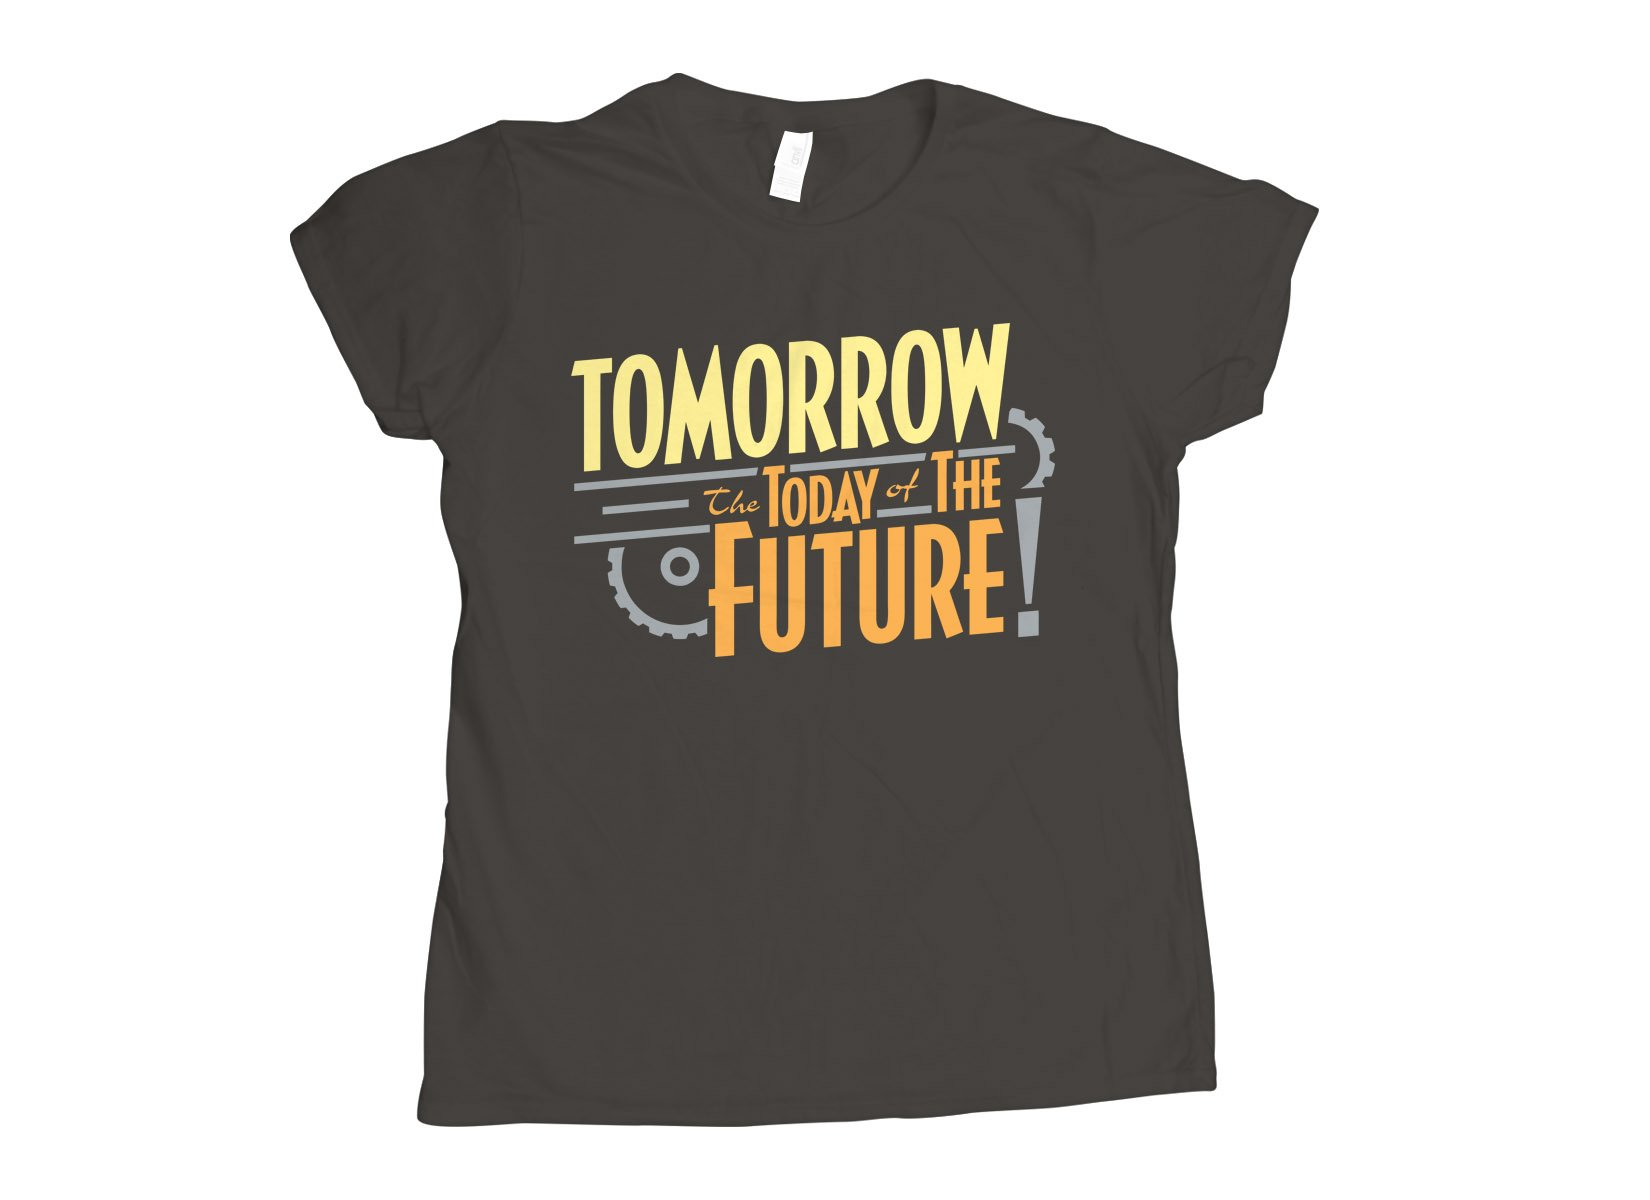 Tomorrow, The Today Of The Future on Womens T-Shirt